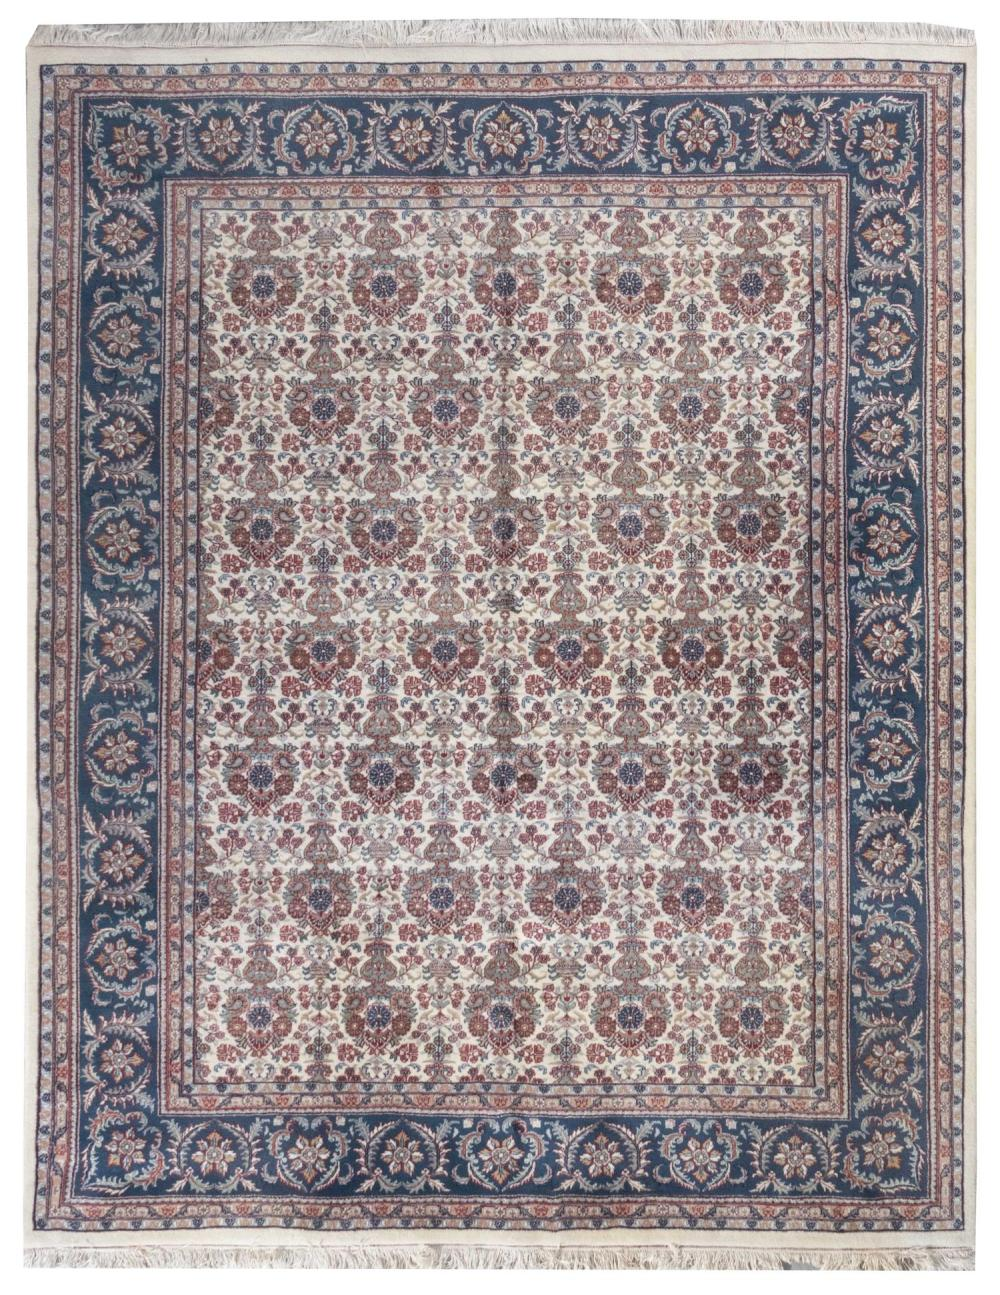 """ORIENTAL RUG: PERSIAN DESIGN 8'2"""" x 10'0"""" Ivory field with staggered rows of traditional flower vases rendered in shades of verdigris"""